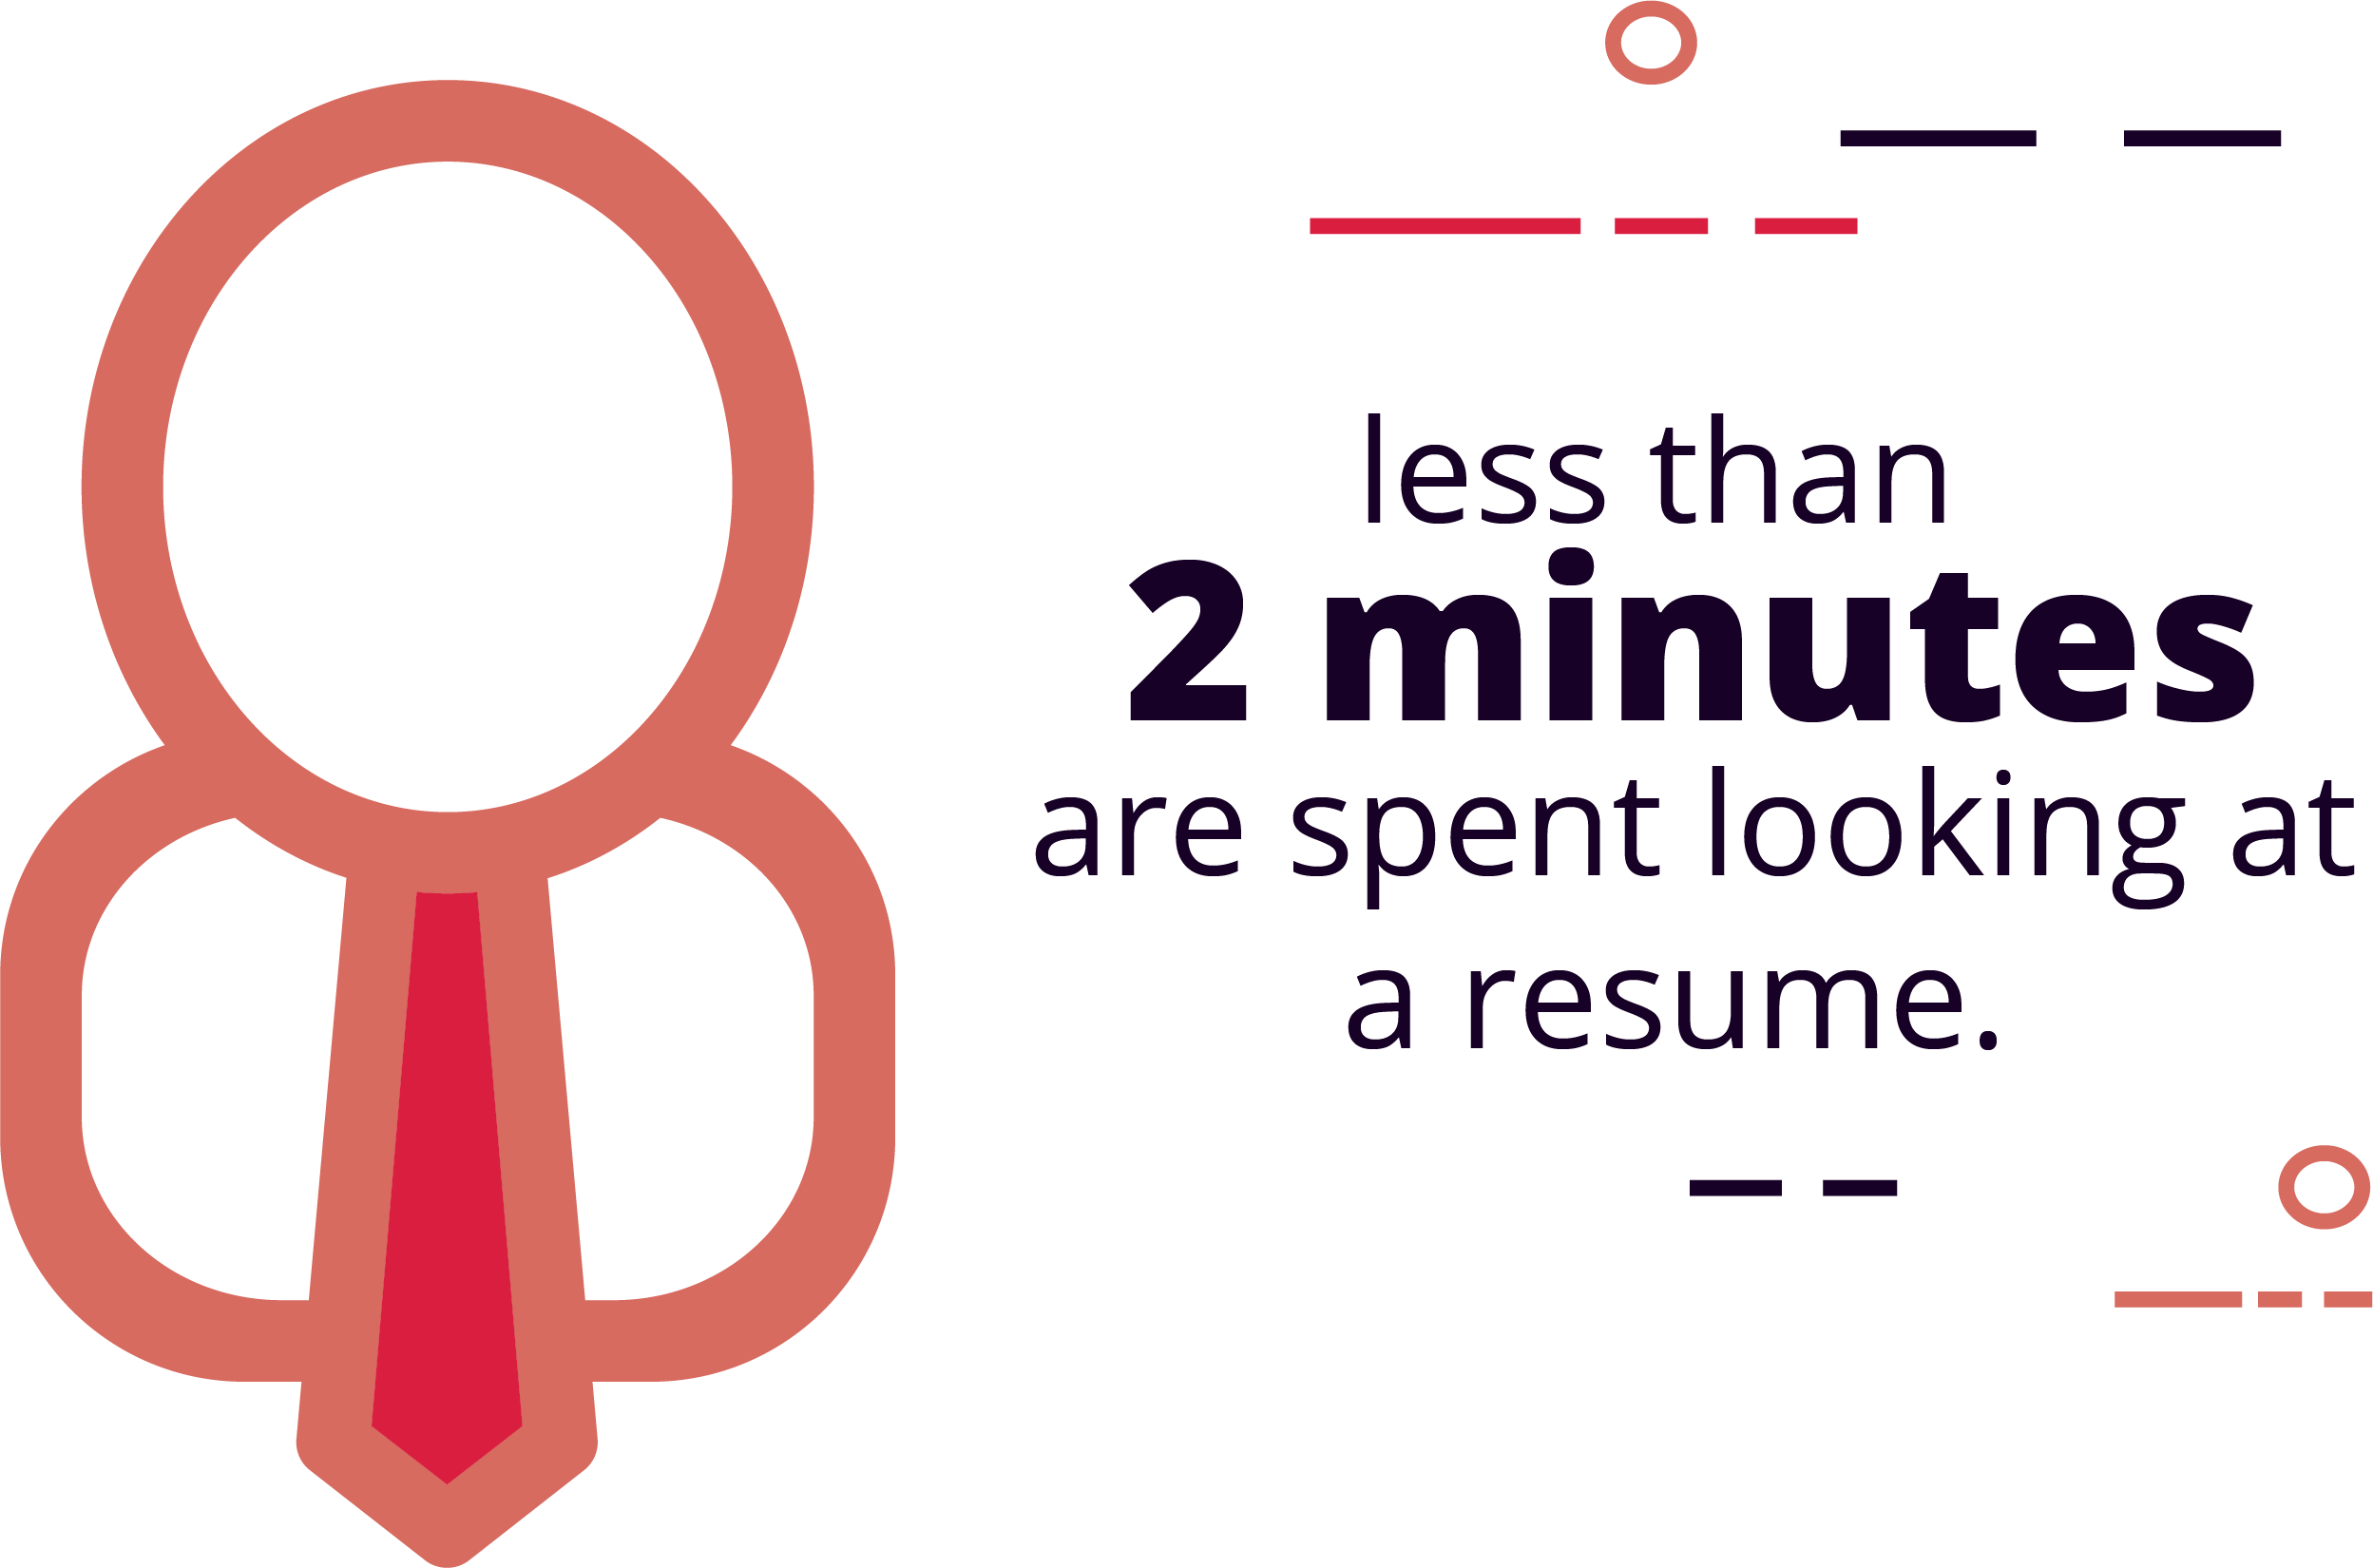 Less than 2 minutes are spent looking at a resume